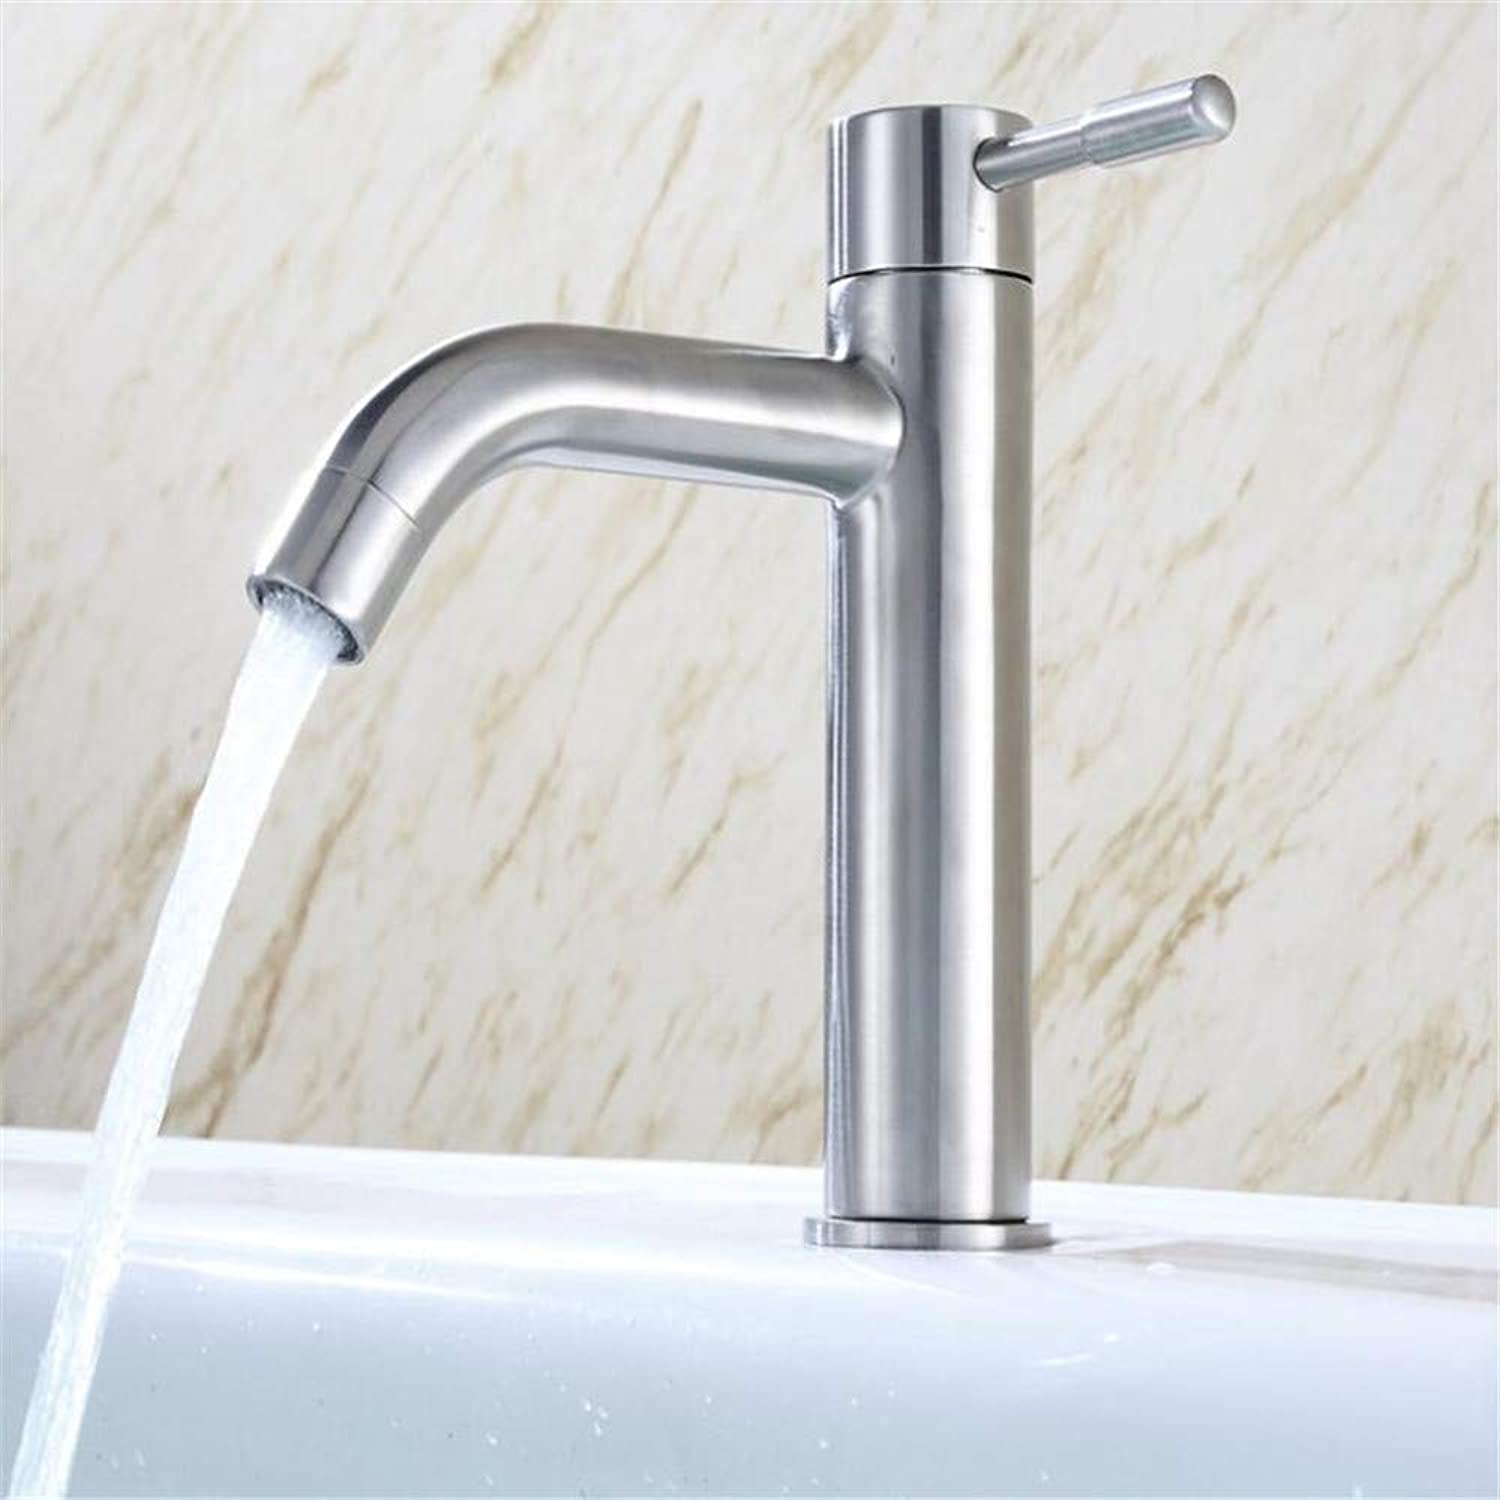 Basin Mixer Tap Stainless Steel Single Cold Basin Faucet Bathroom Toilet Basin Wash Basin Single Hole 304 Faucets.